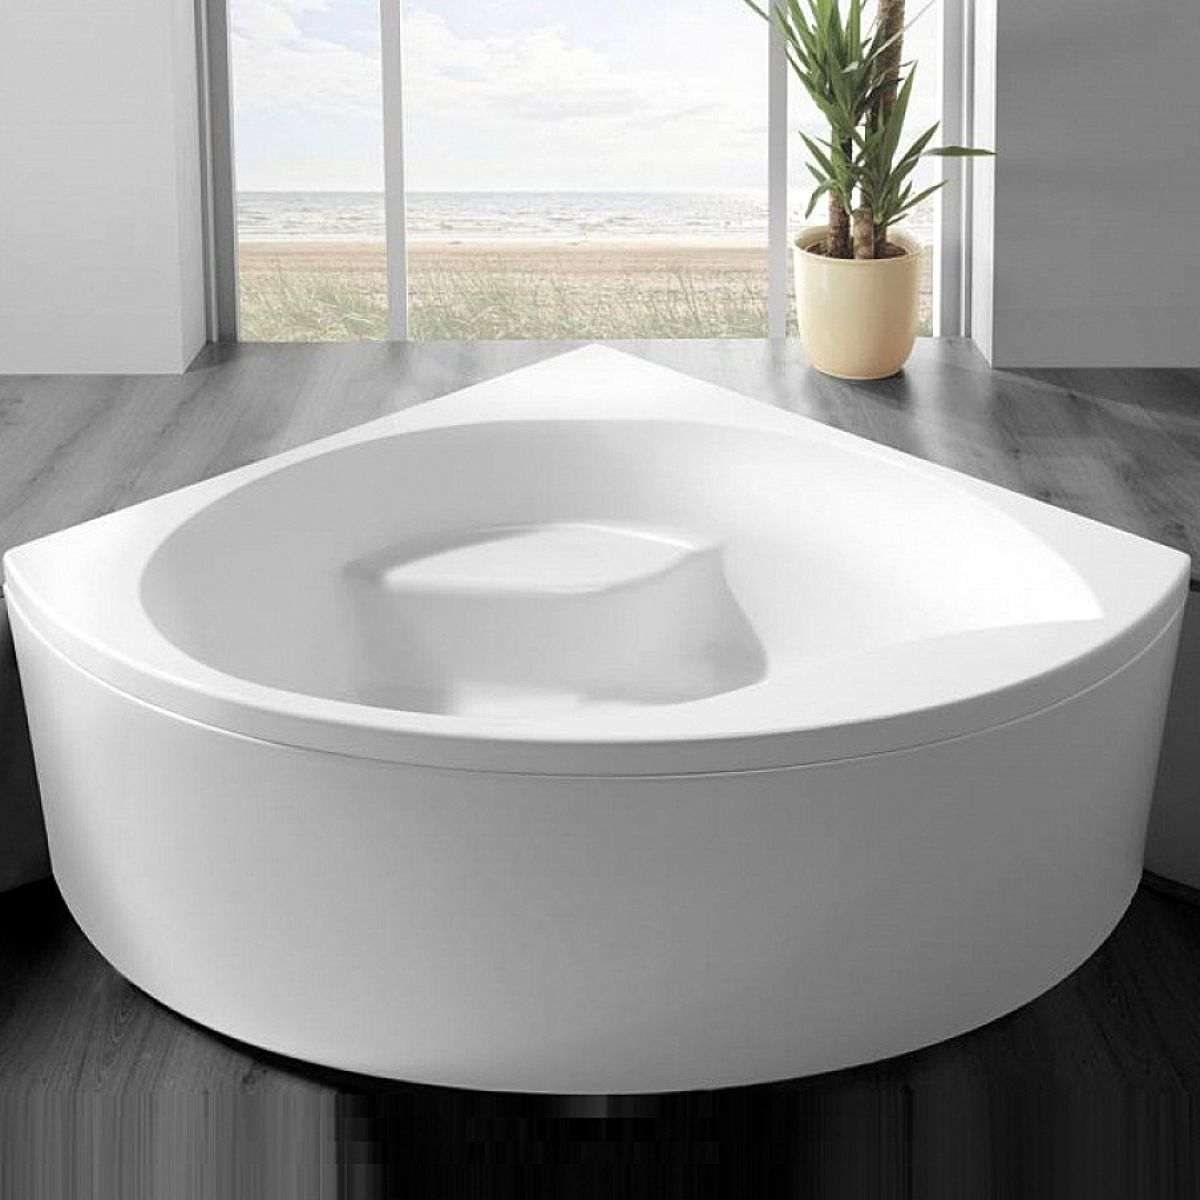 Corner Baths Offset Baths Amp Space Saver Baths On Sale